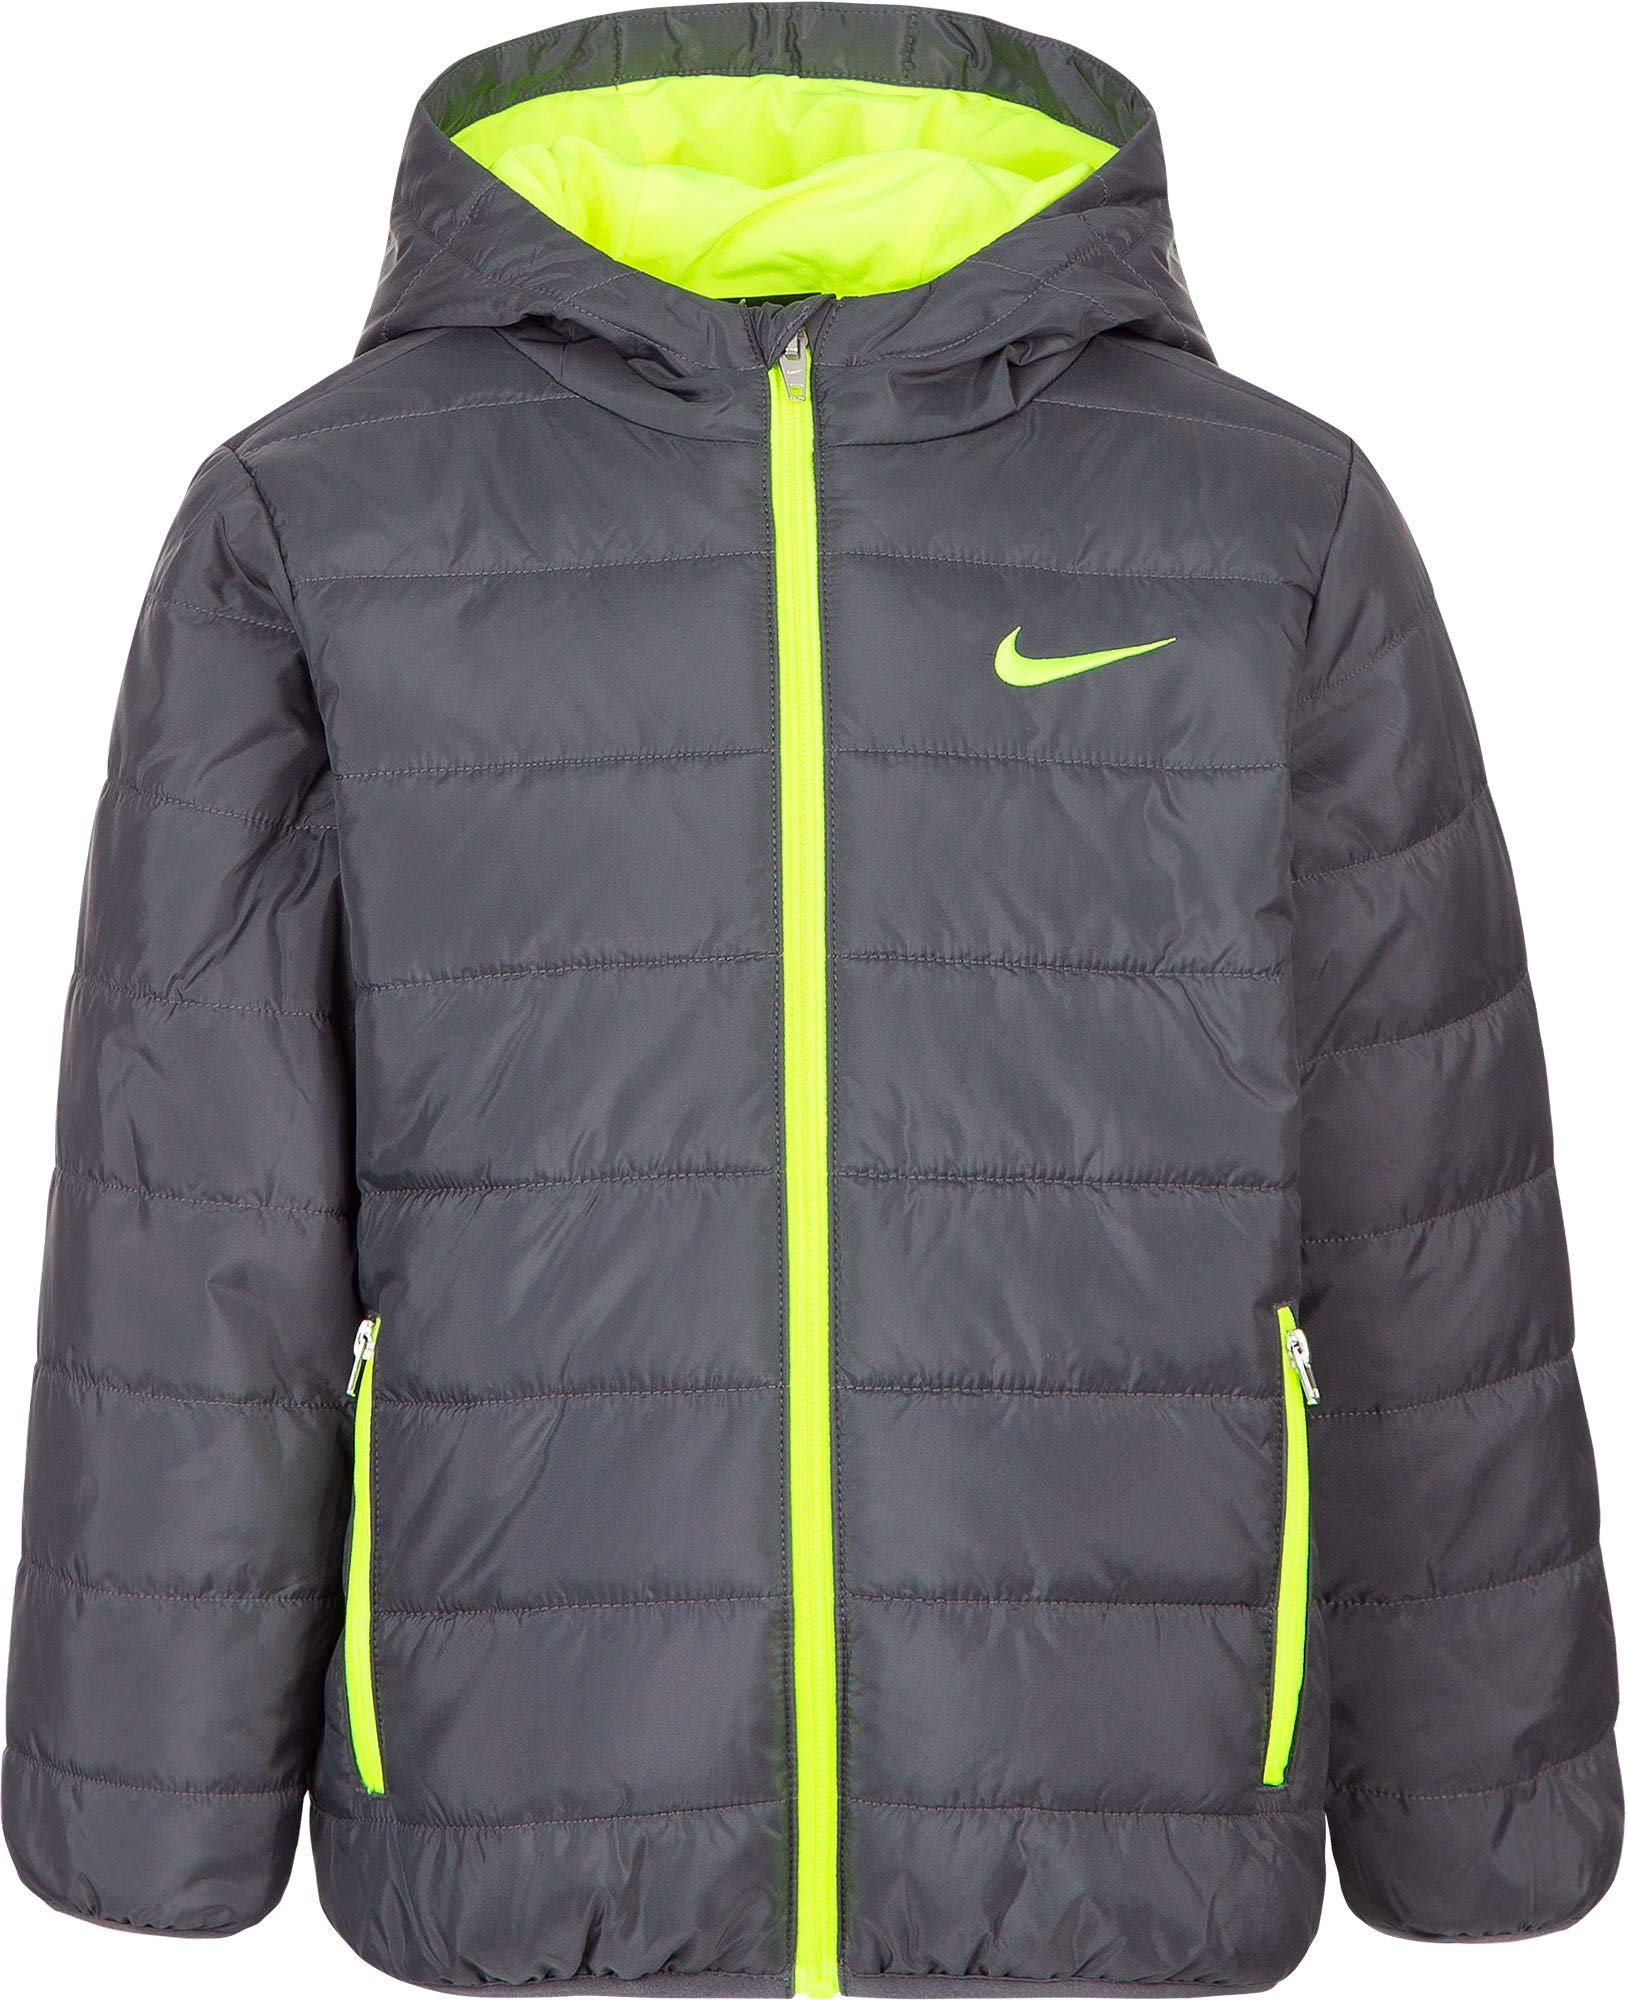 Nike Boy's Polyfill Quilted Insulated Puffer Jacket (Dark Grey, 4) by Nike (Image #1)